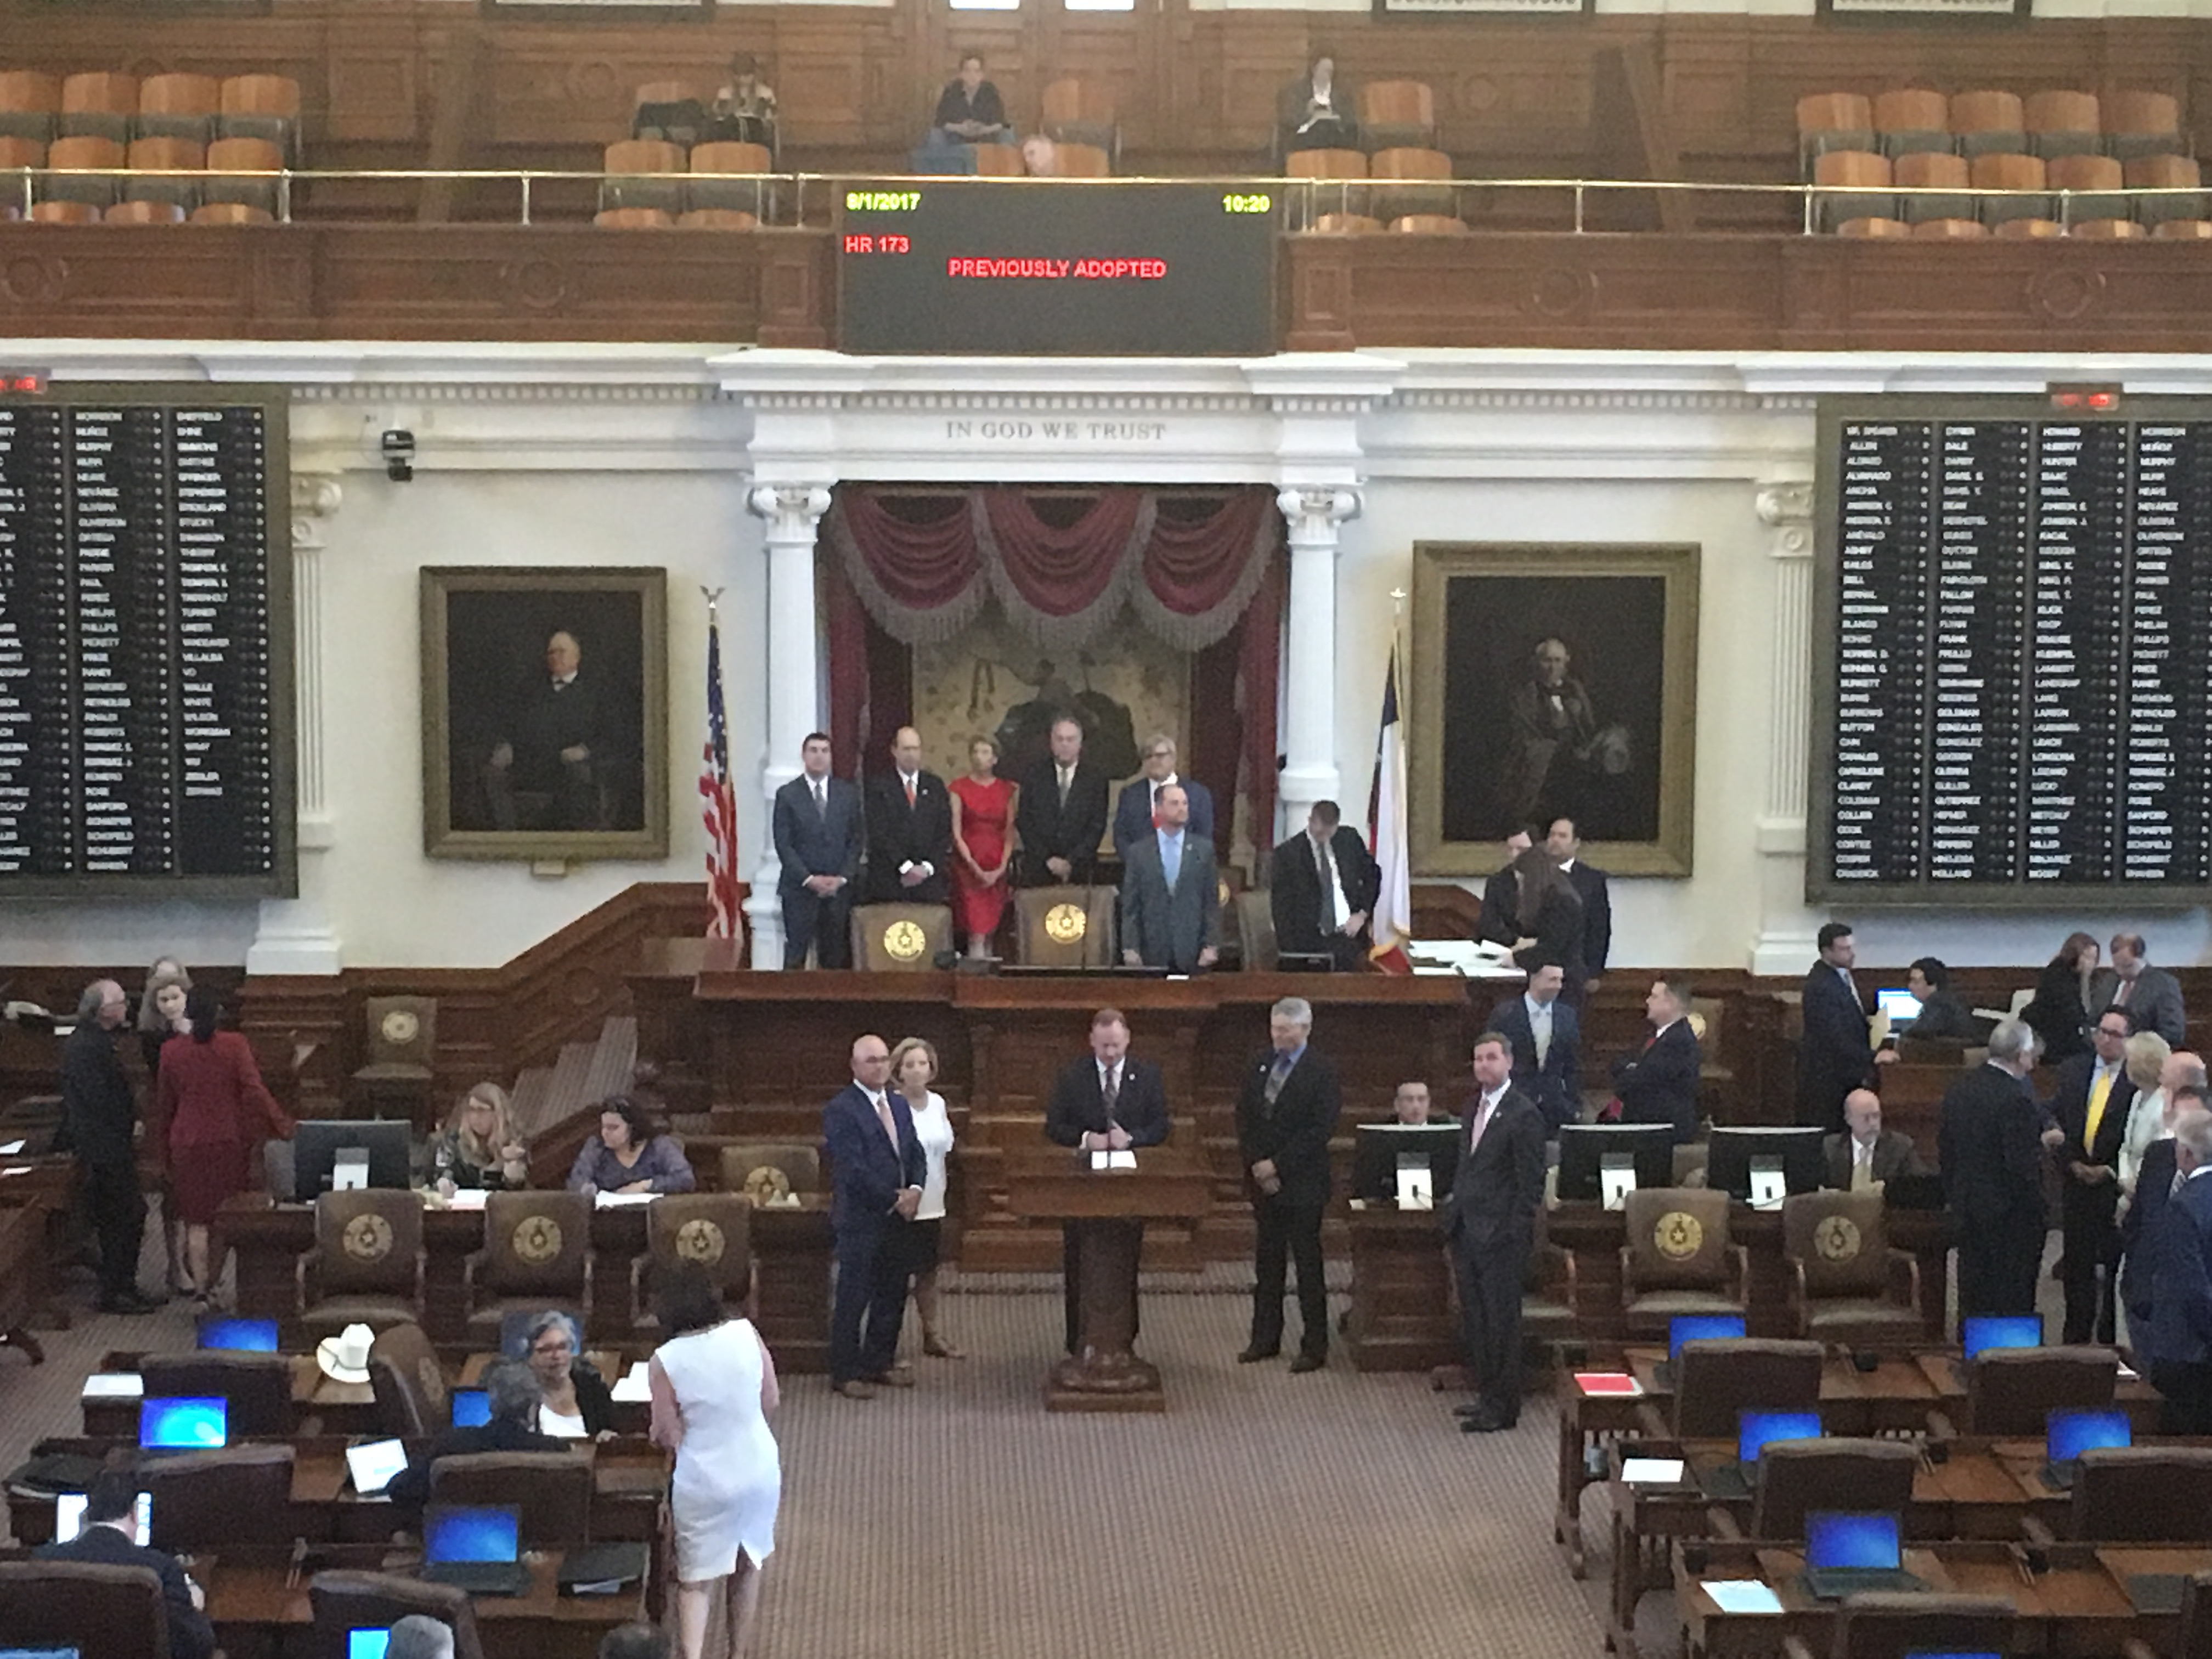 Authored By State Representative Four Price, The Texas House Of  Representatives Today Unanimously Approved House Resolution 173,  Commemorating The 10th ...